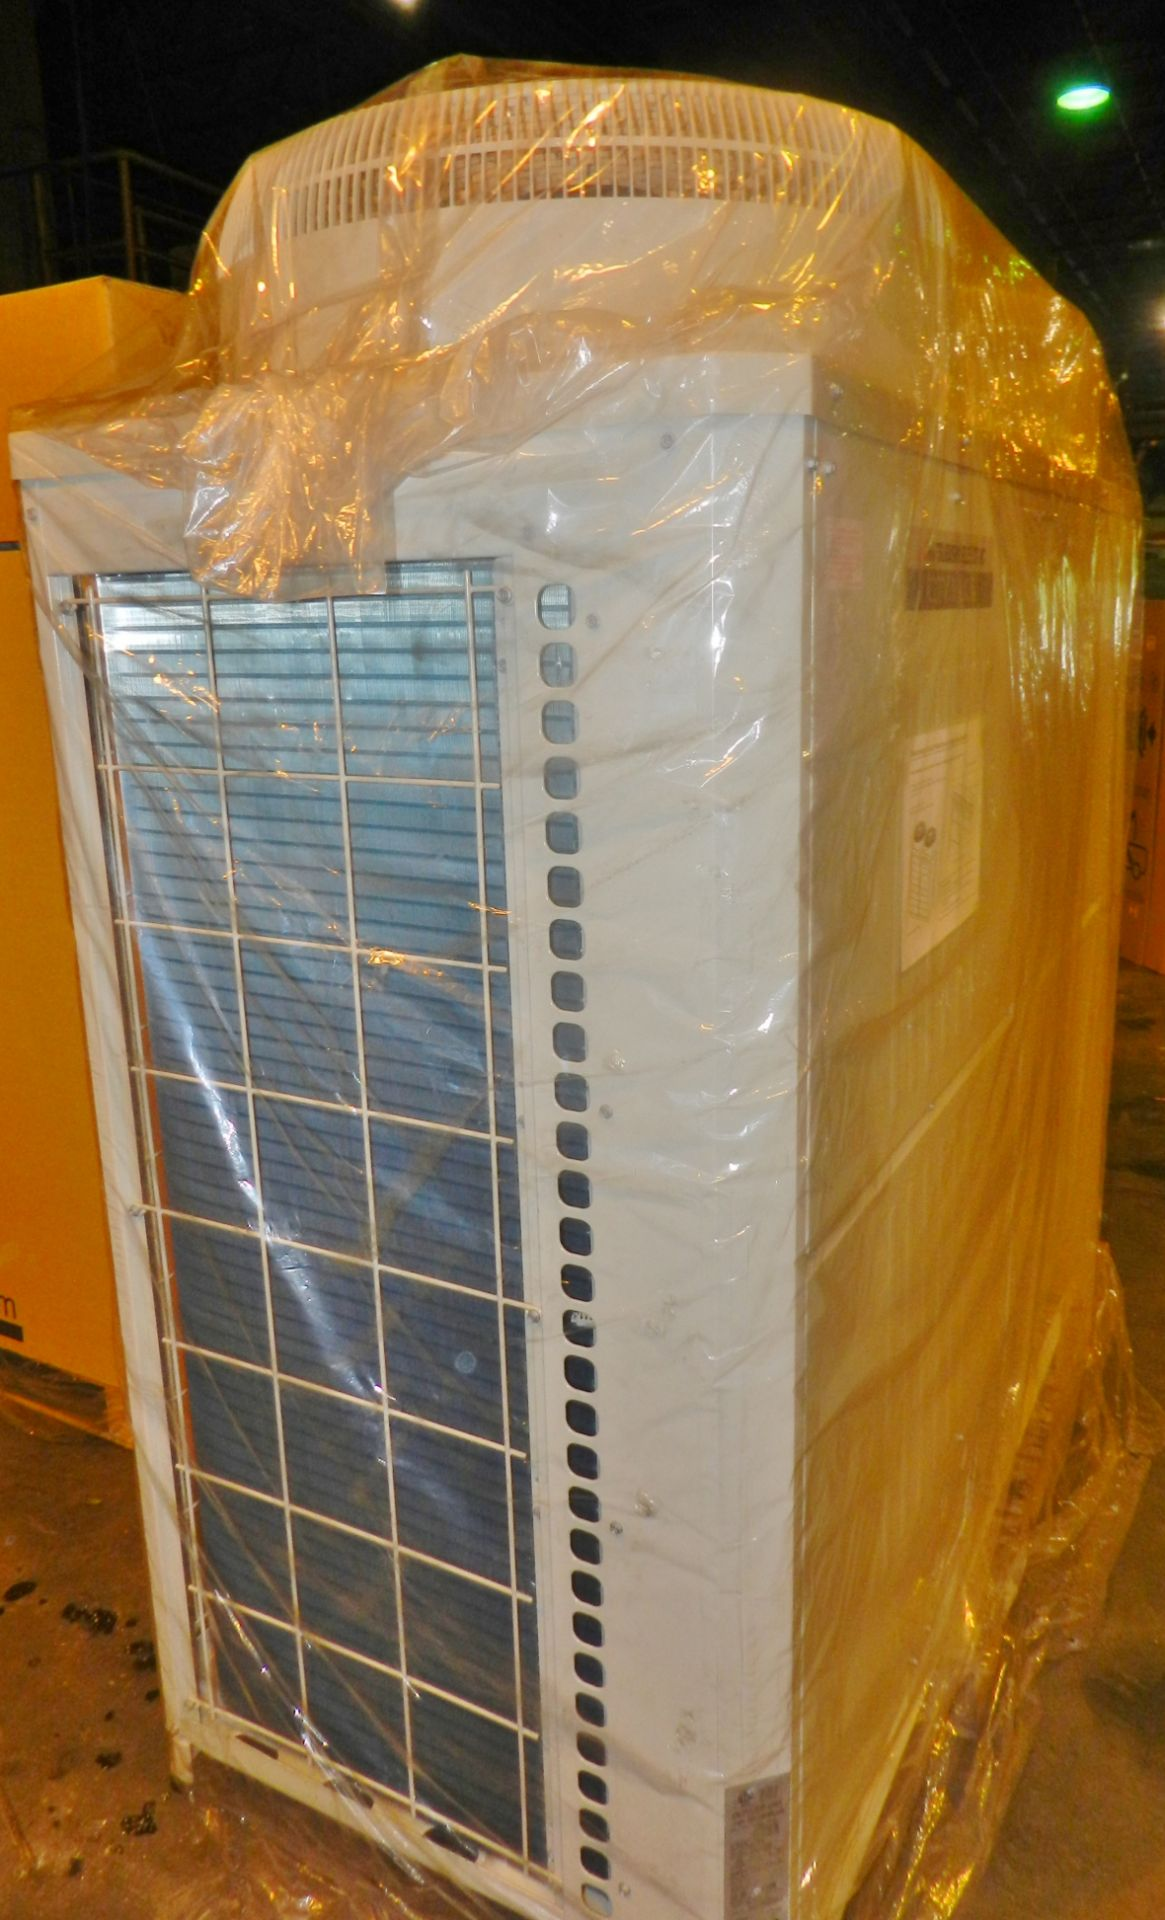 Lot 26 - Mitsubishi 10 Ton Air Conditioner Outdoor Unit PUHY-P120TJMU-A-BS